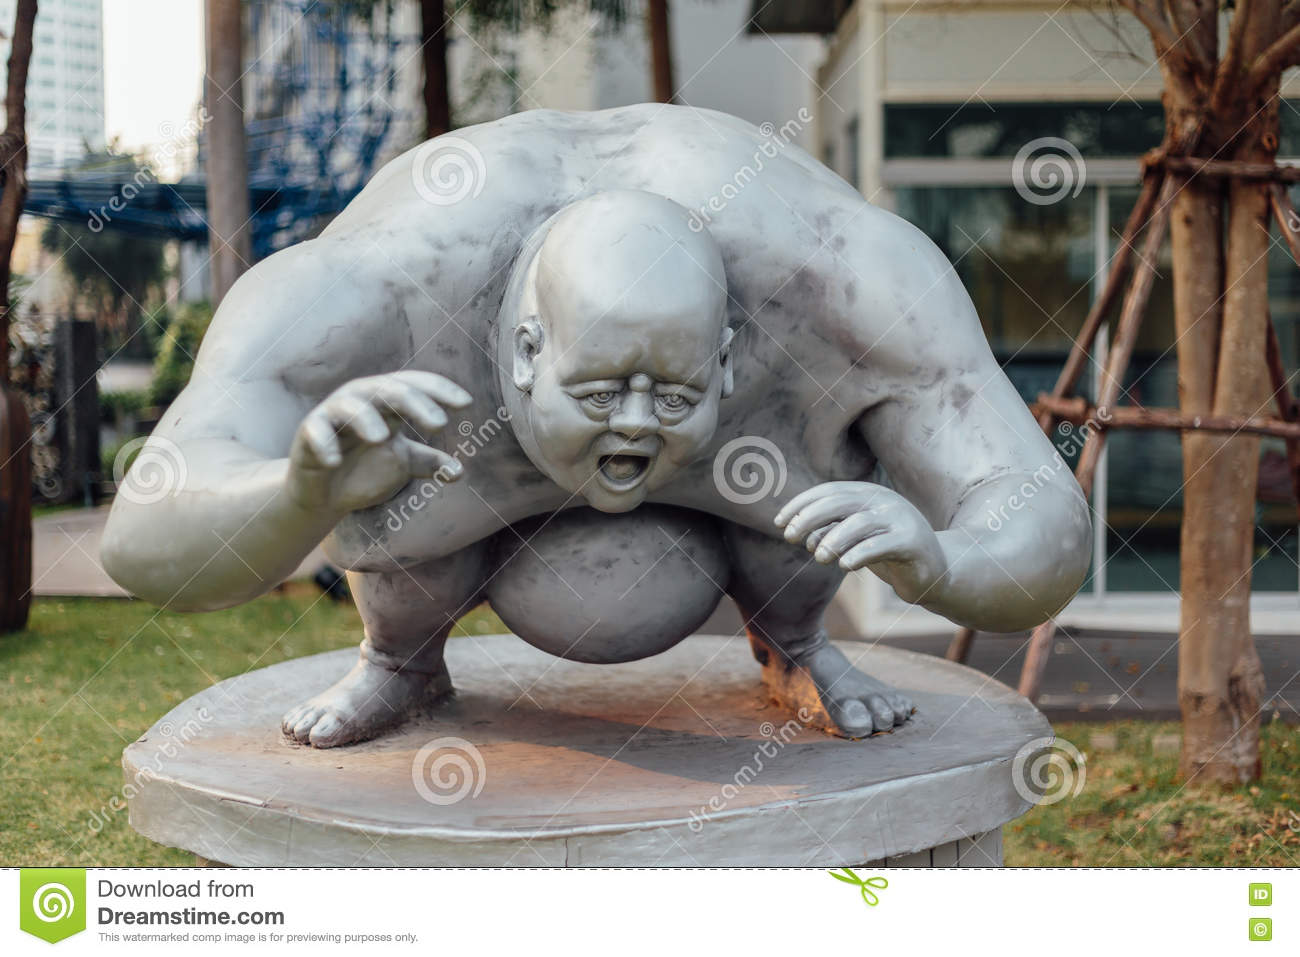 Grey Fat Guy Sculpture exterior